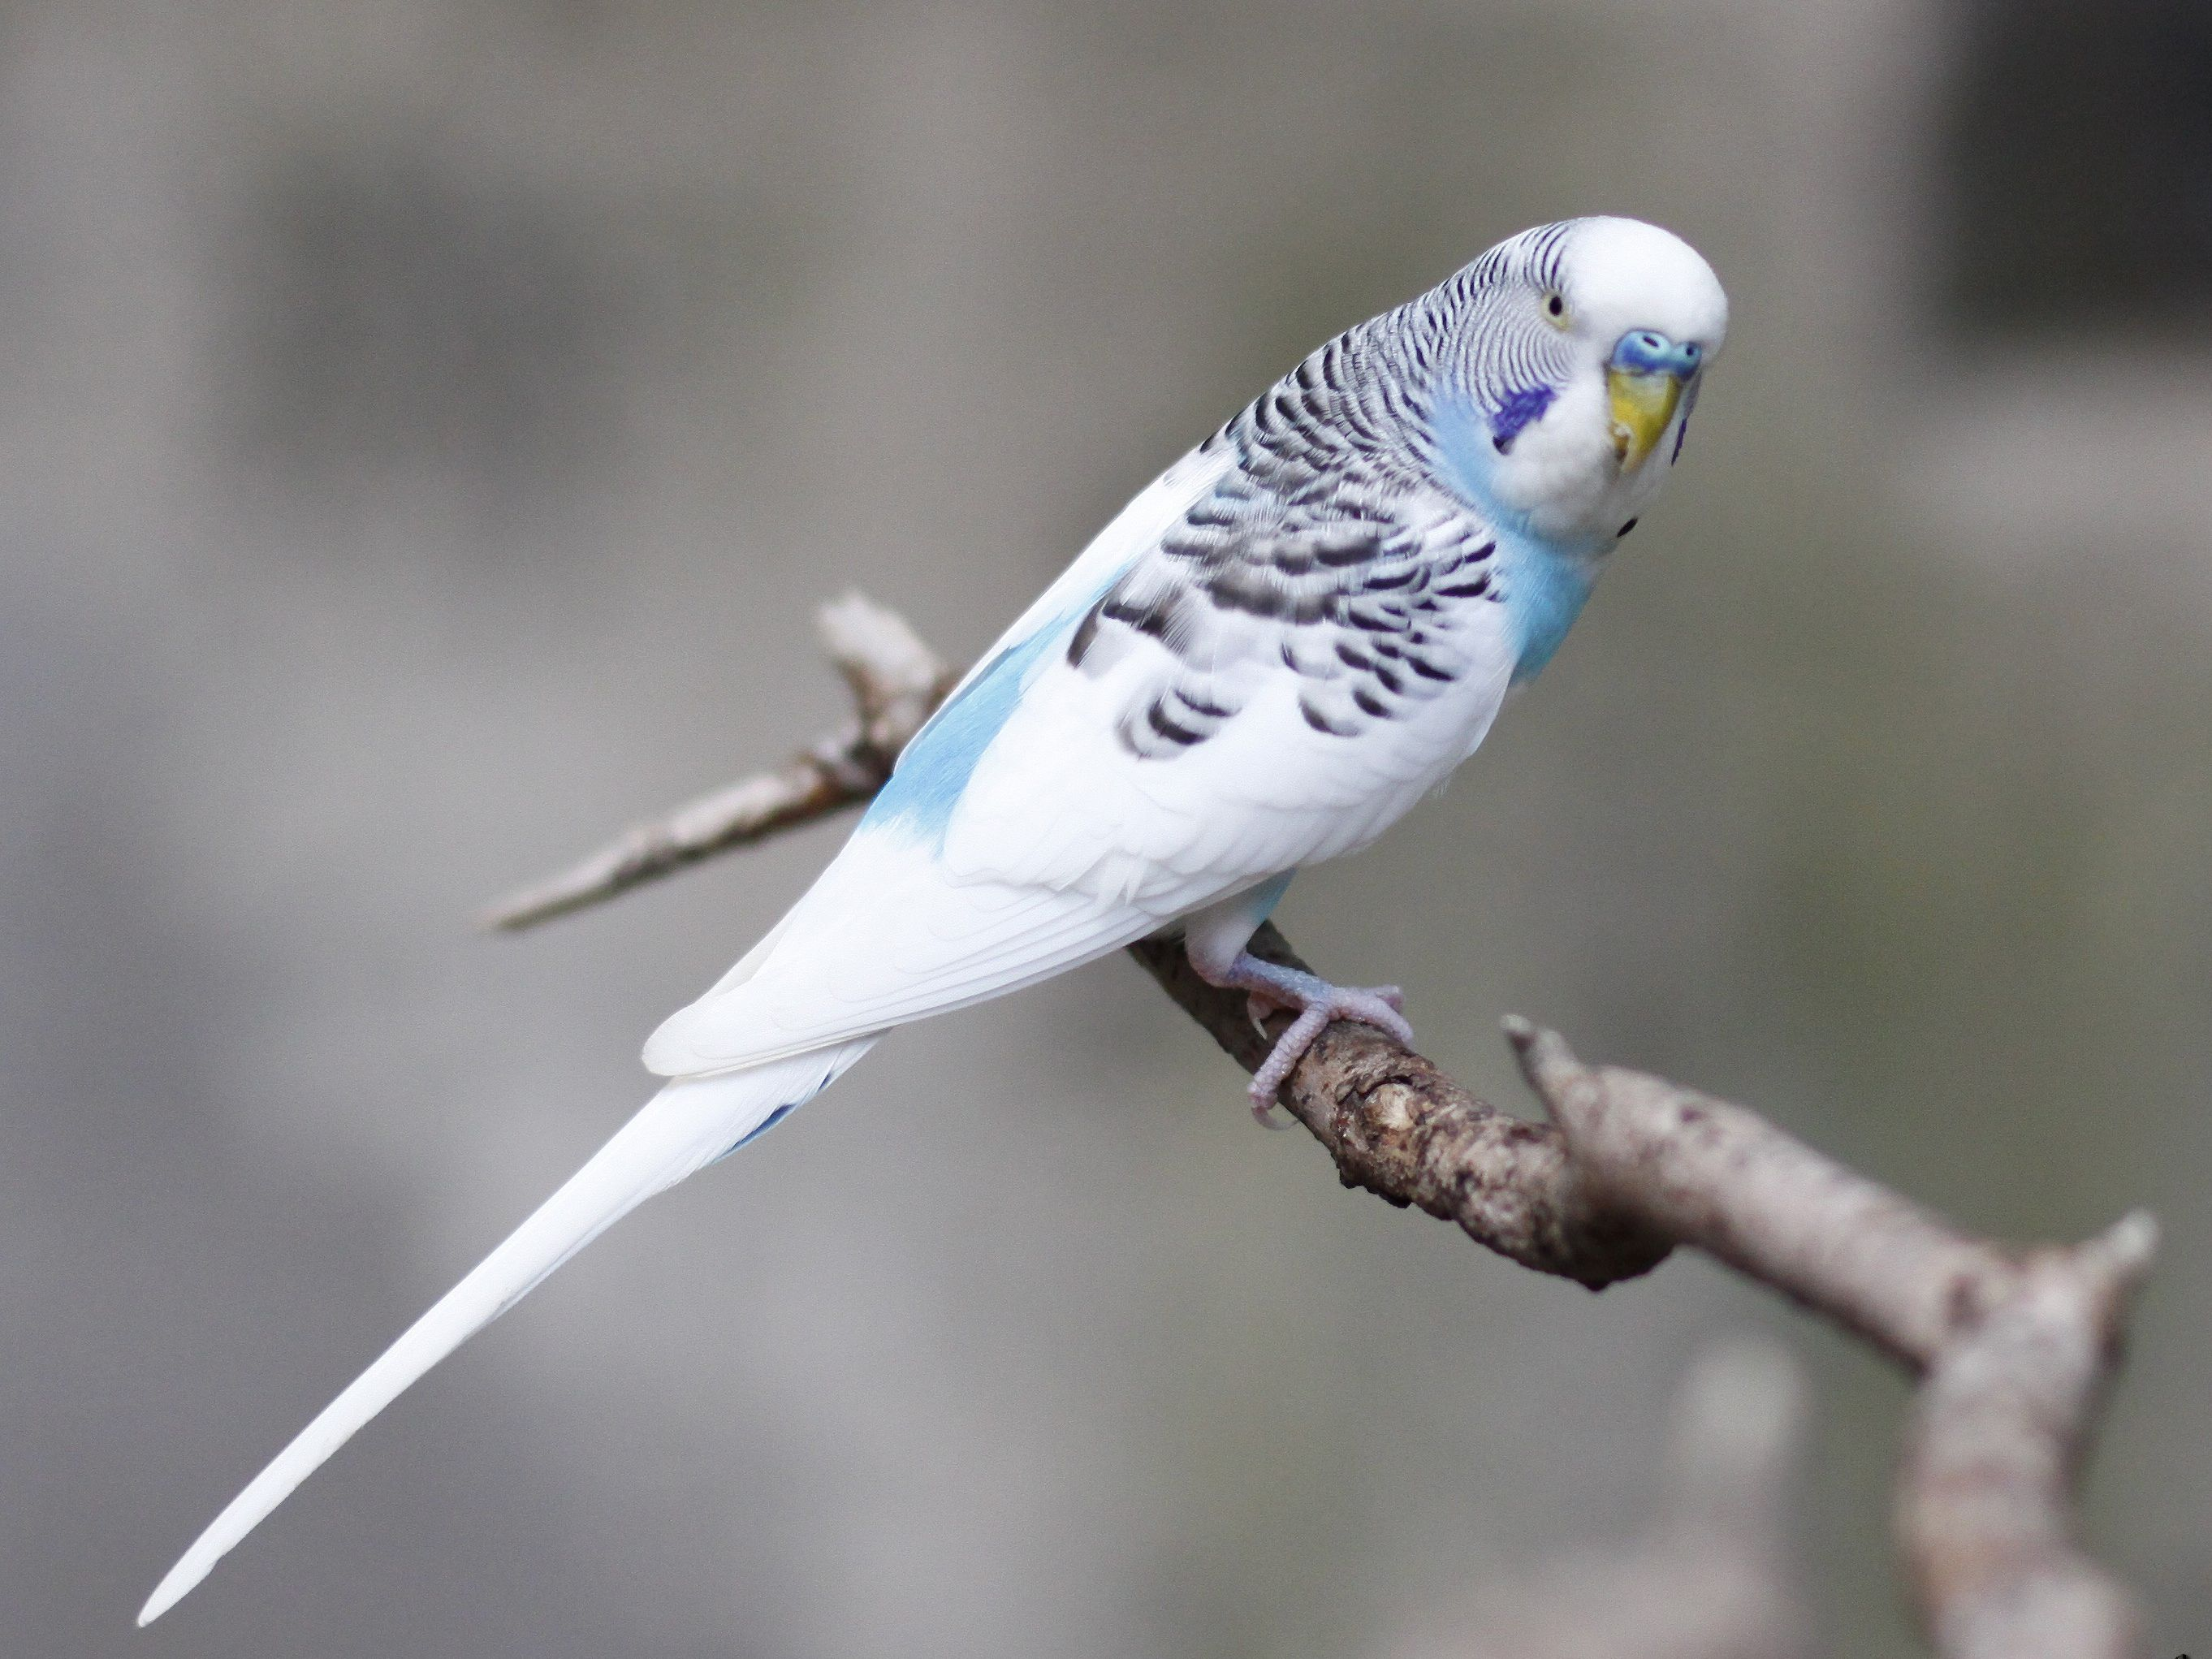 What Are The Differences Between Parakeets And Budgies?